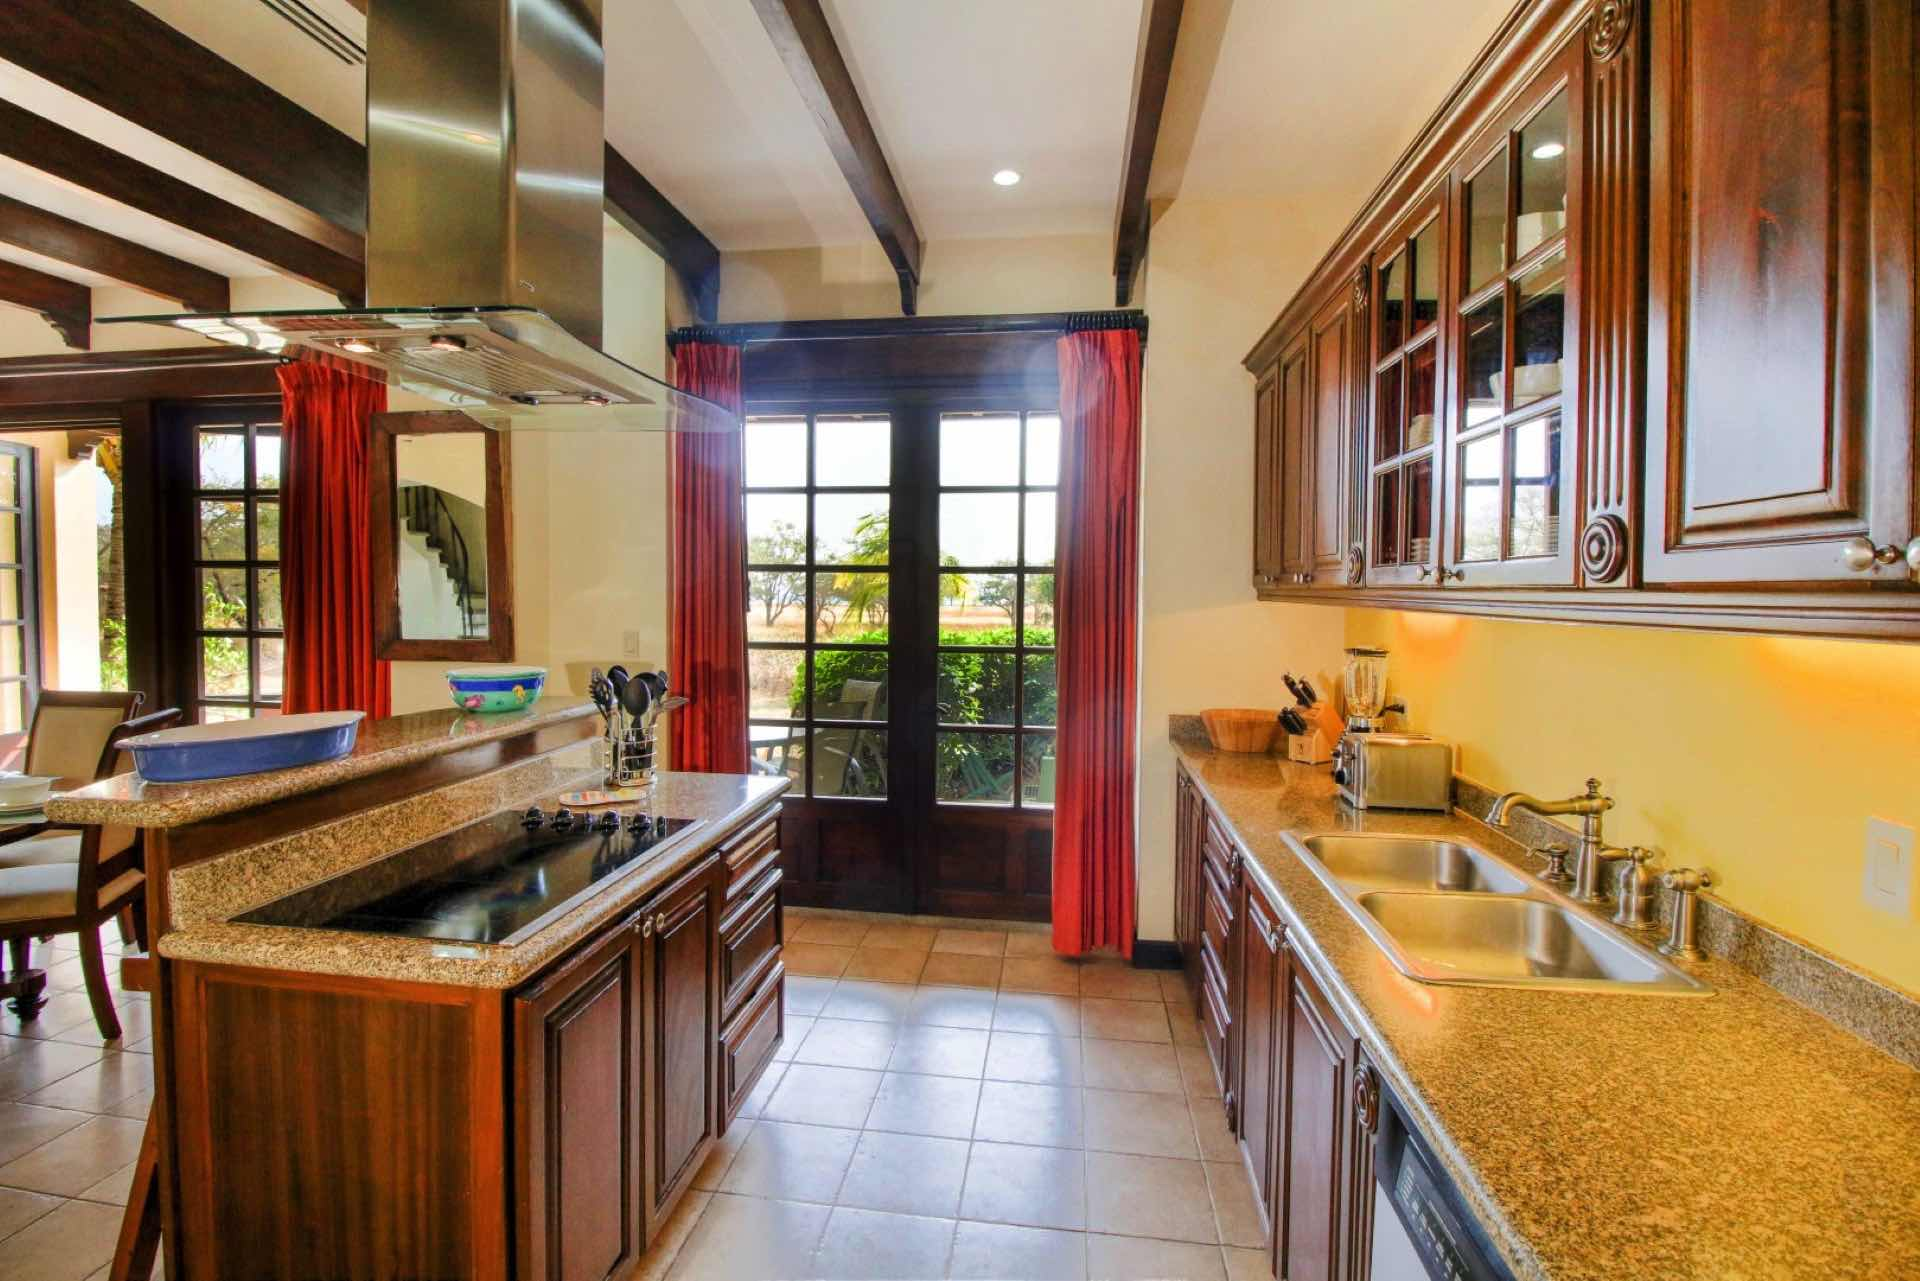 Fully equipped kitchen to cook your own meals